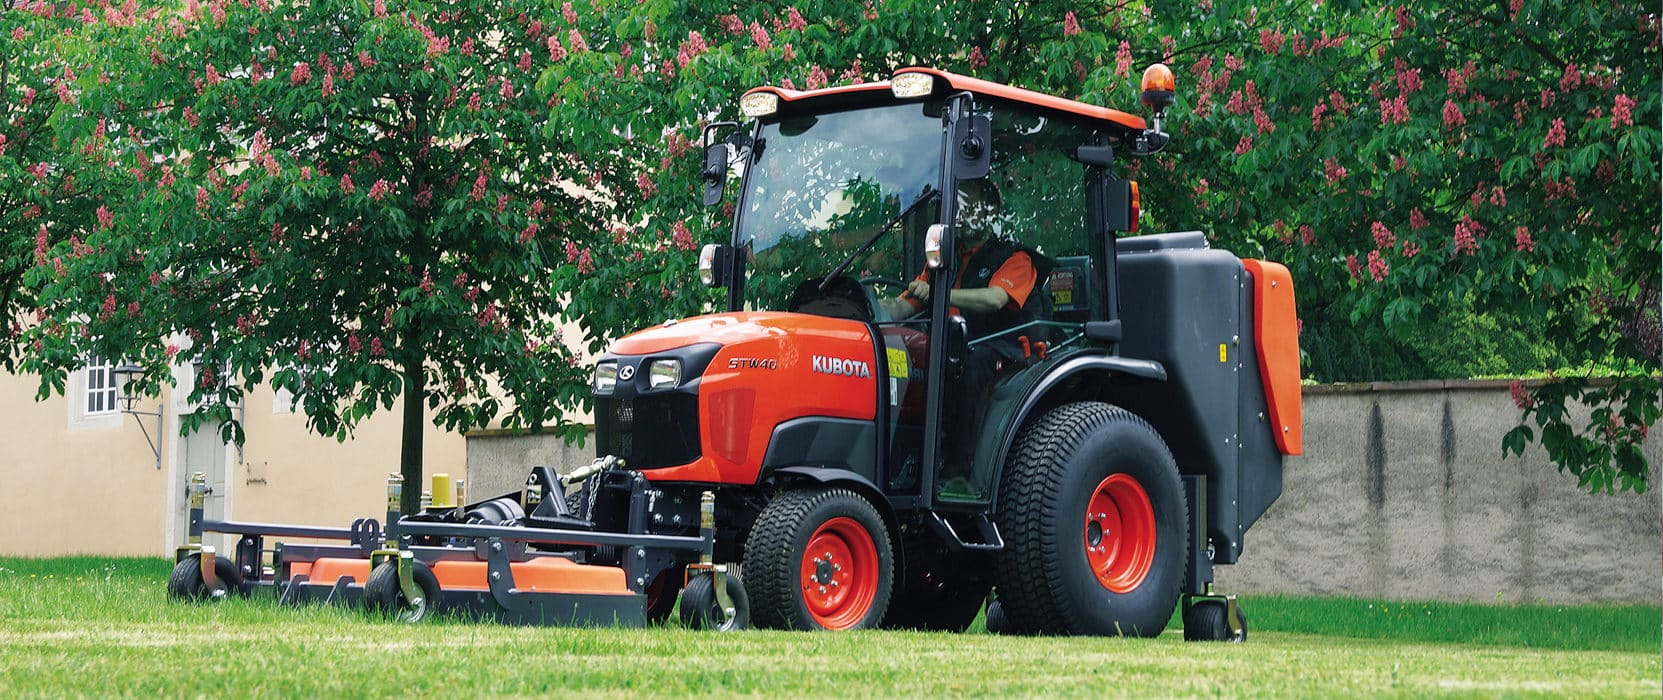 Tractor serie STW